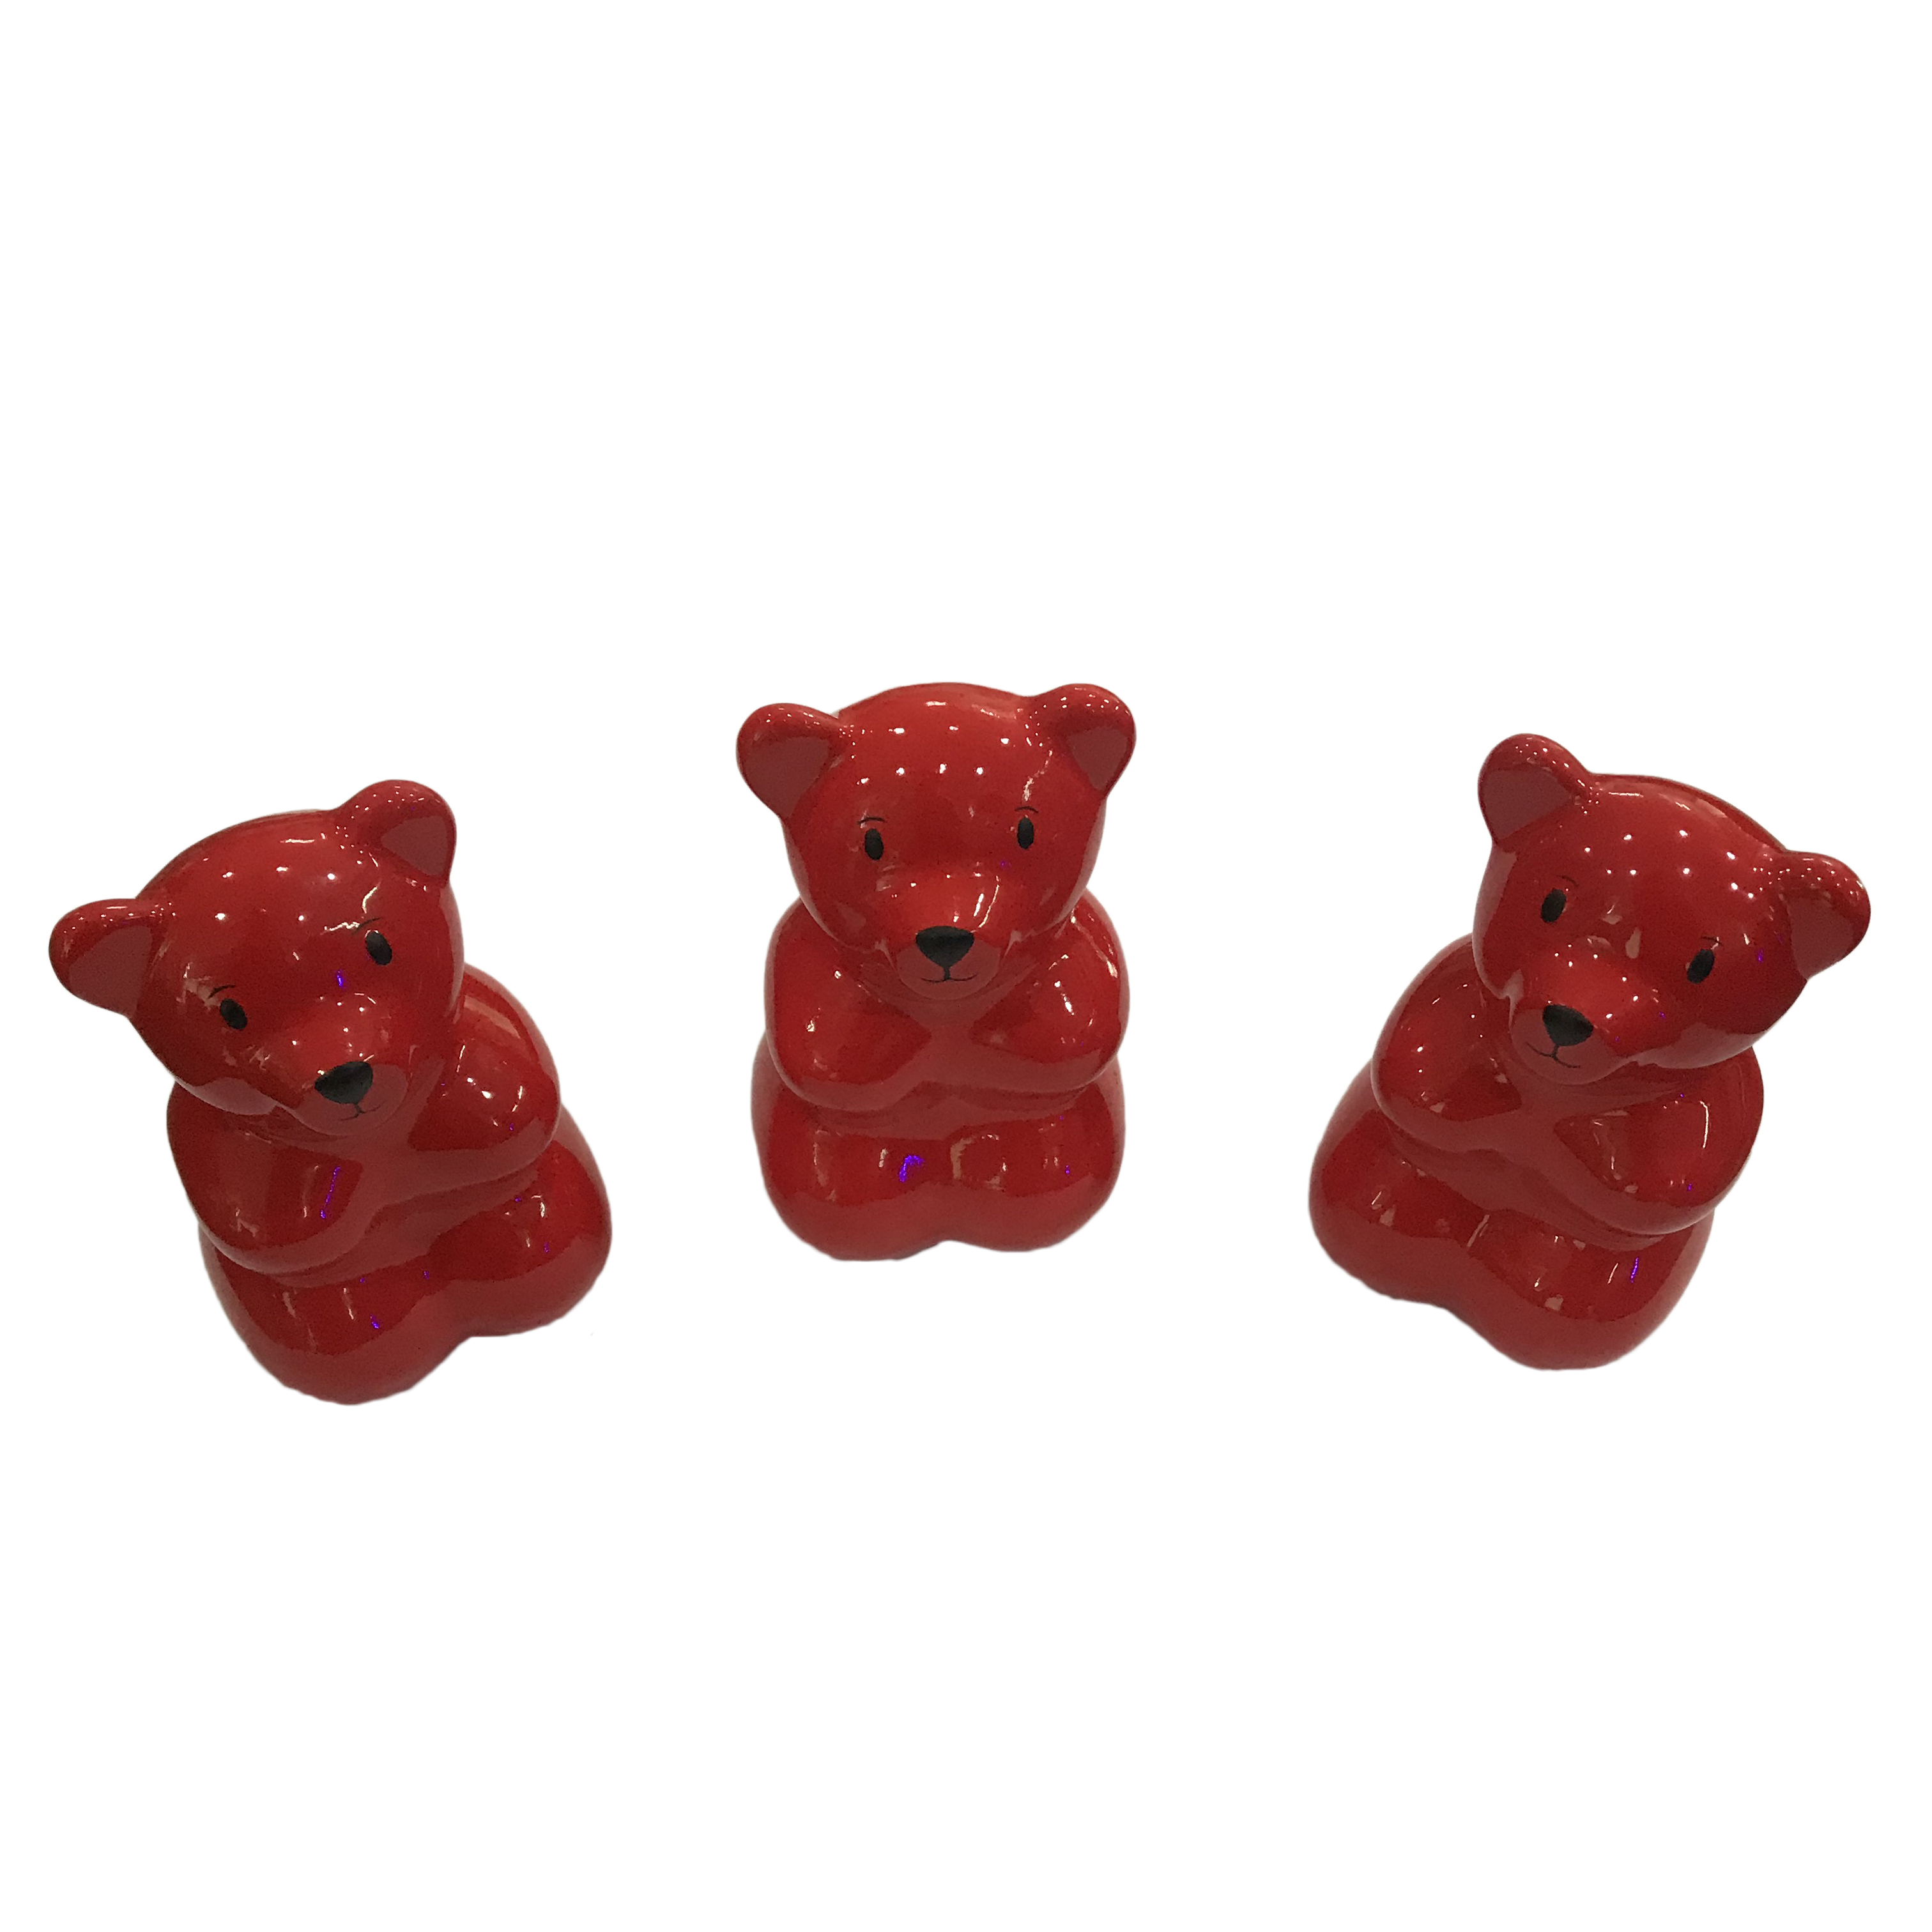 Wholesale cheap animal indoor gifts home ornaments resin bear sculpture